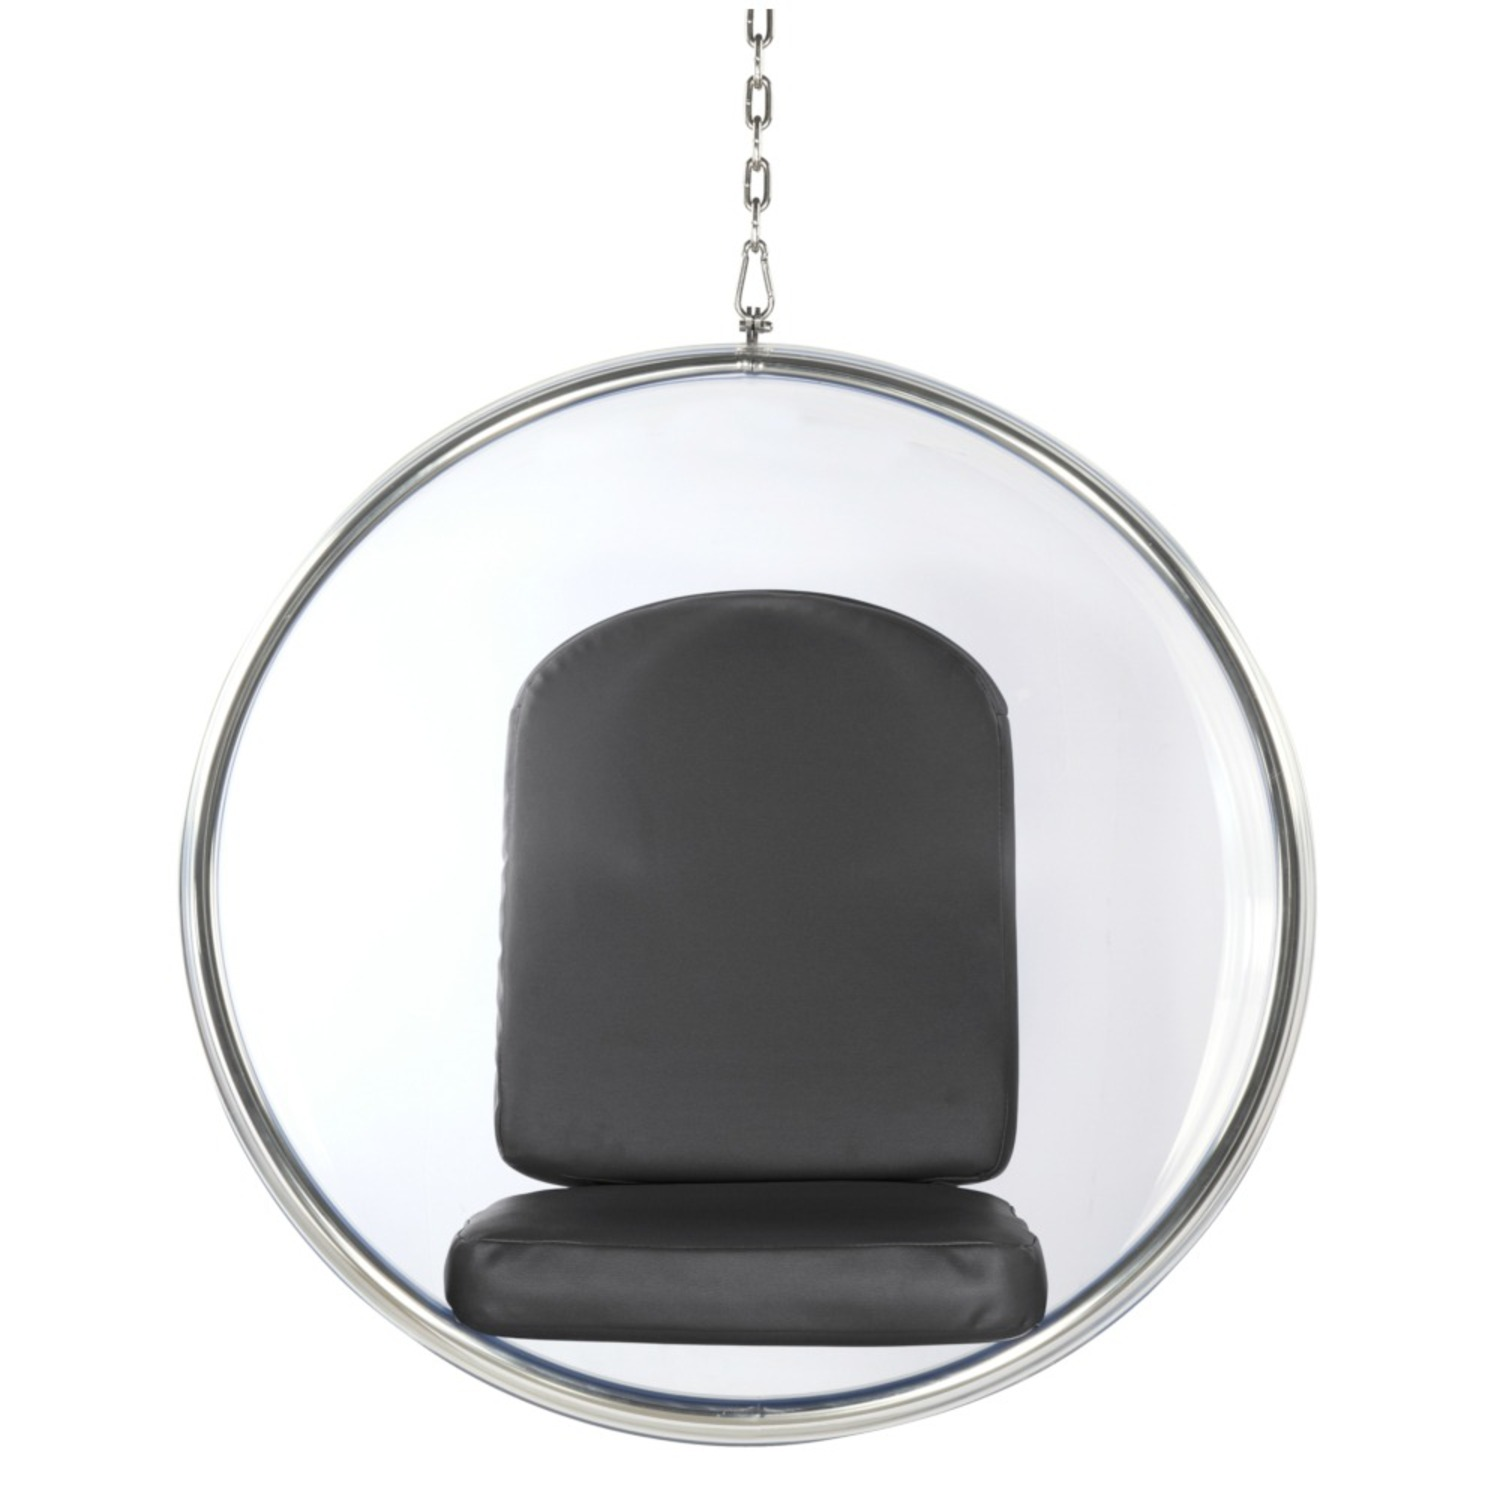 Hanging Chair In Clear Acrylic & Gray PU Leather - image-1